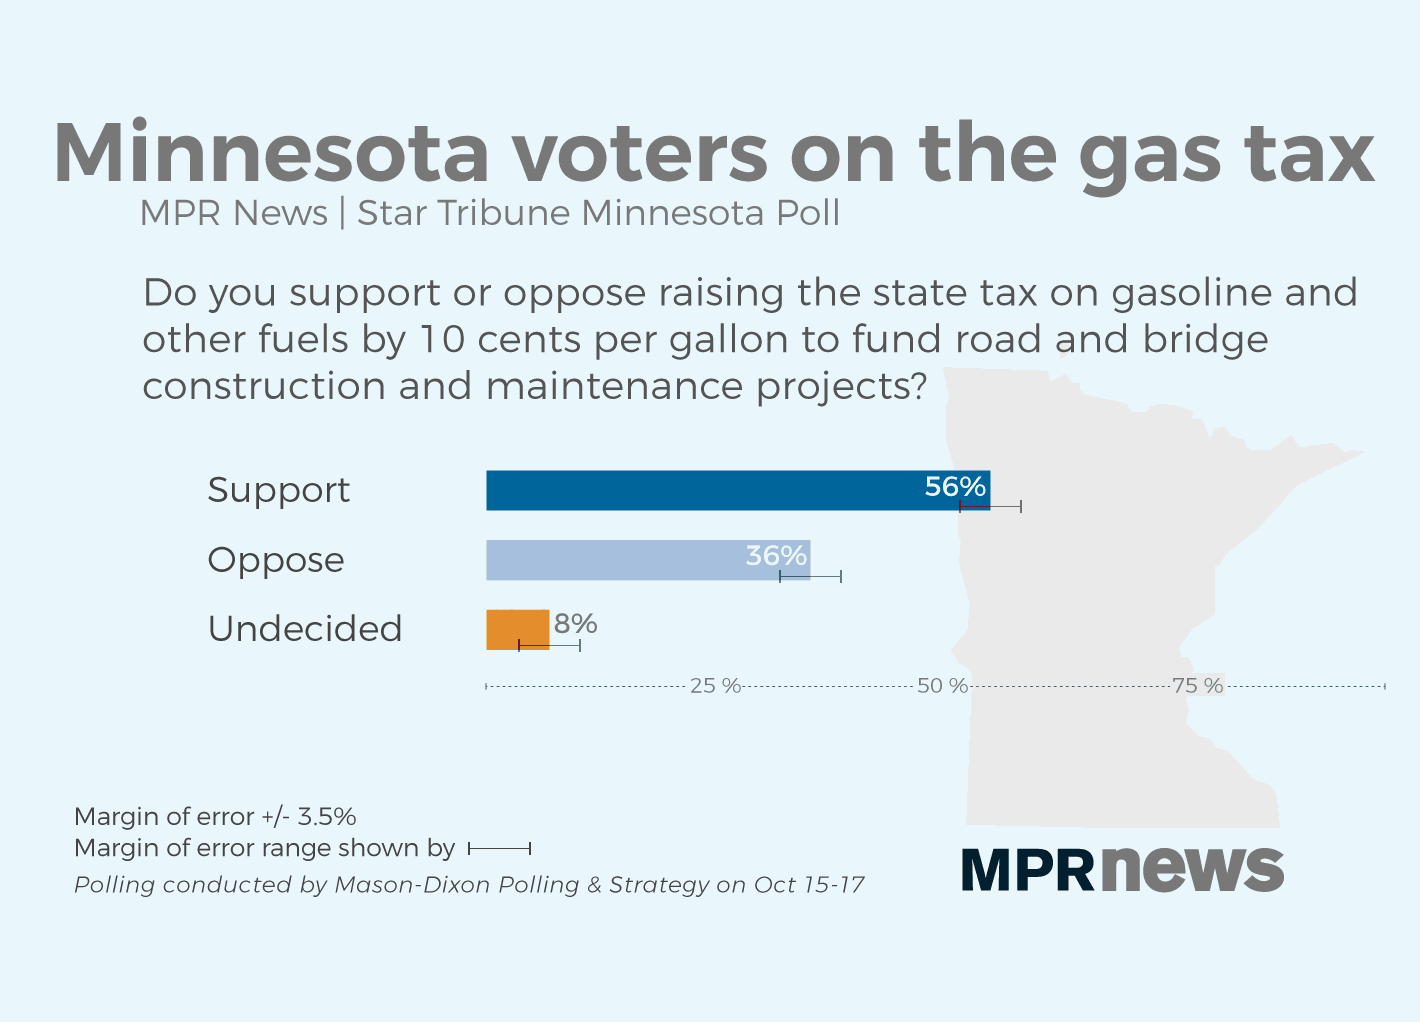 Most Minnesotans support a gas tax increase